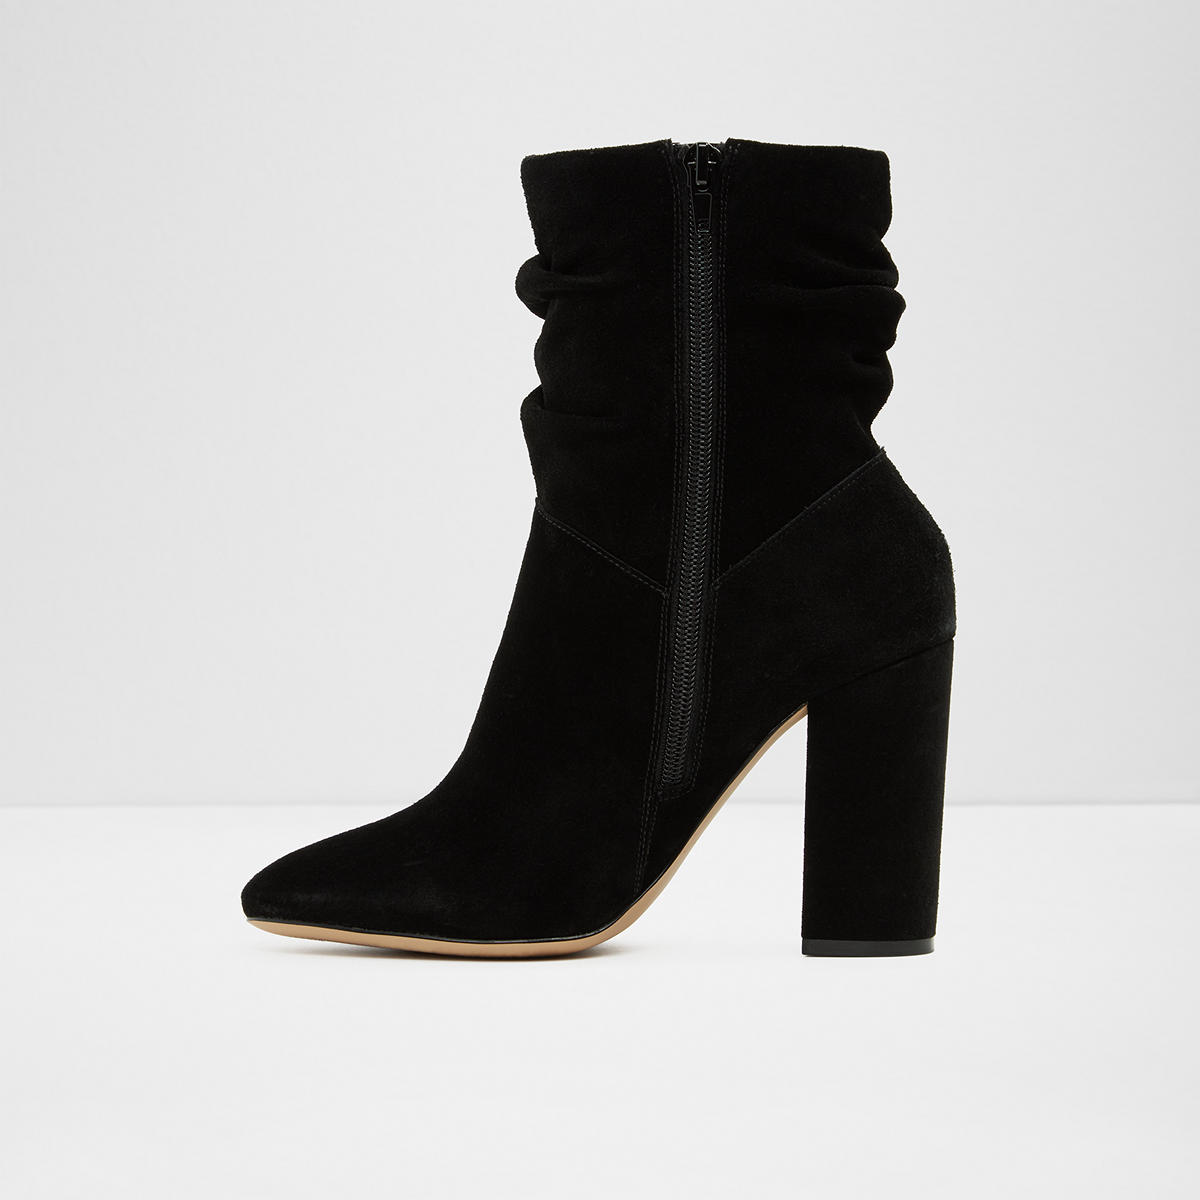 b7ce07198f44 Wicessa Black Other Women s Boots